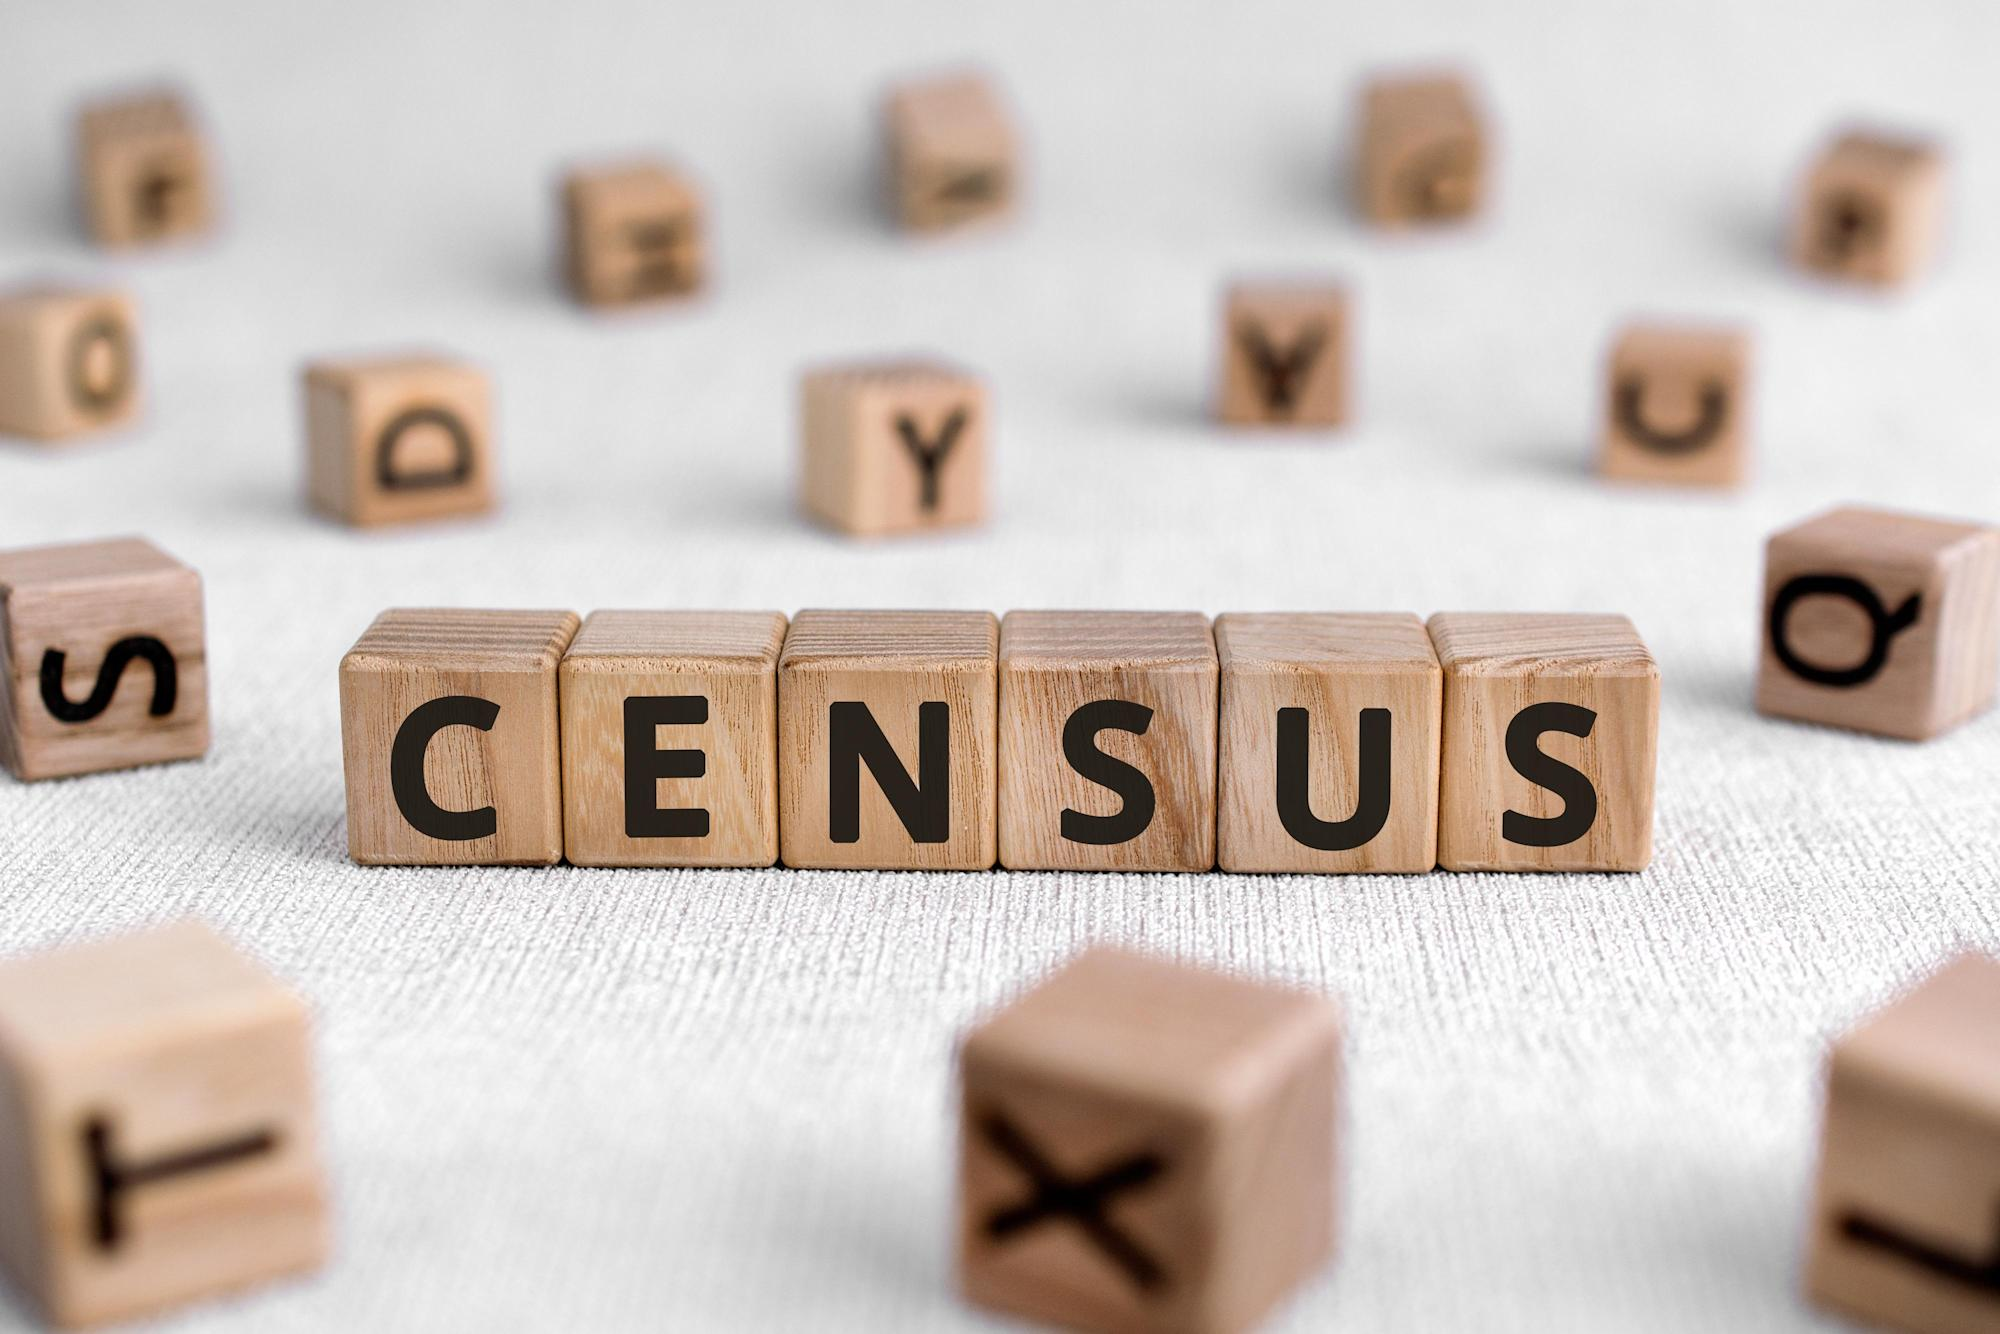 Census raises $16M Series A to help companies put their data warehouses to work